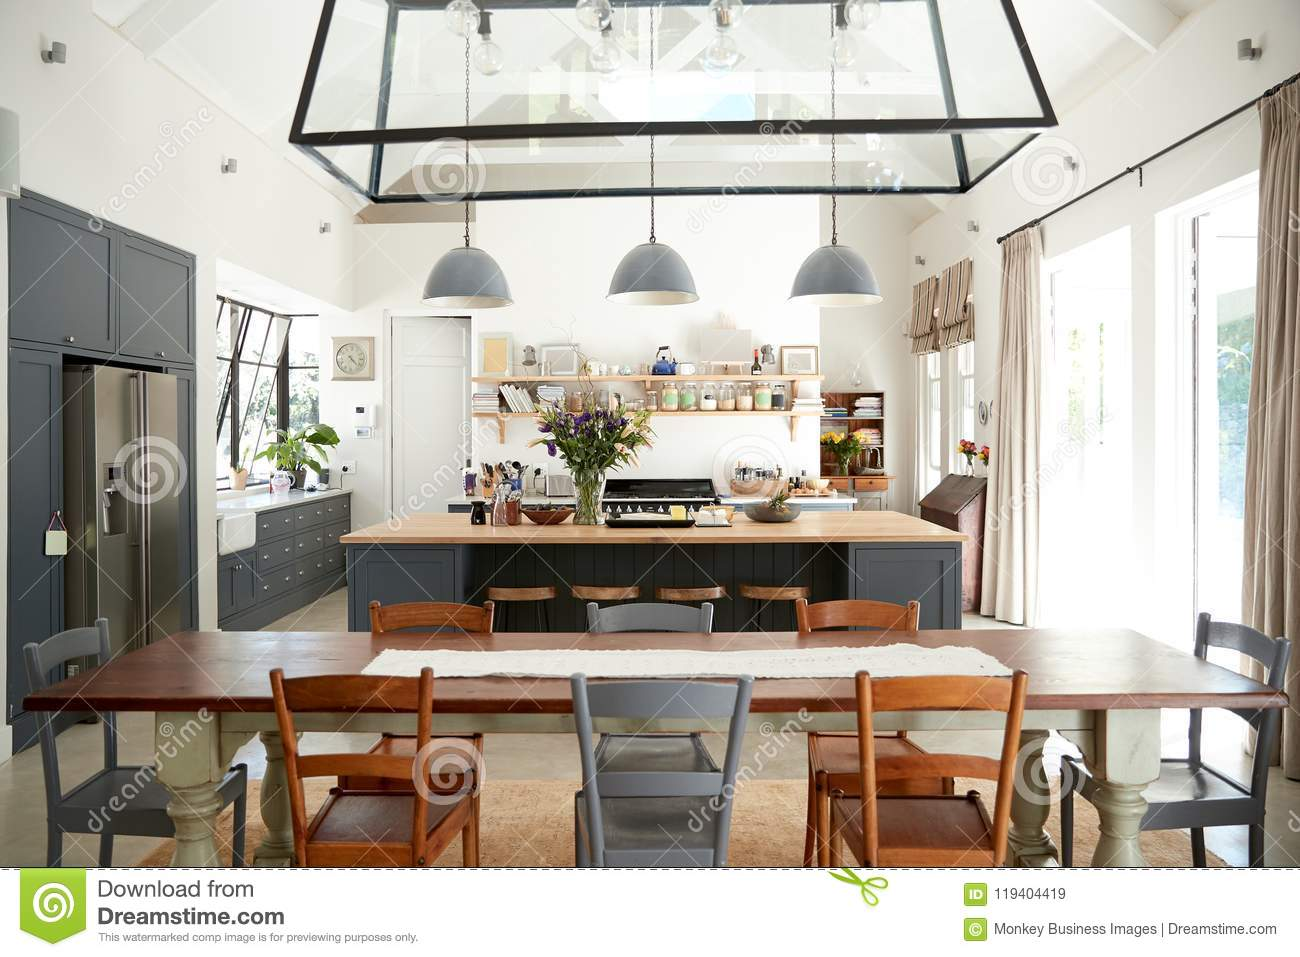 Open Plan Kitchen Diner In A Period Conversion Family Home Stock Image Image Of Domestic Room 119404419